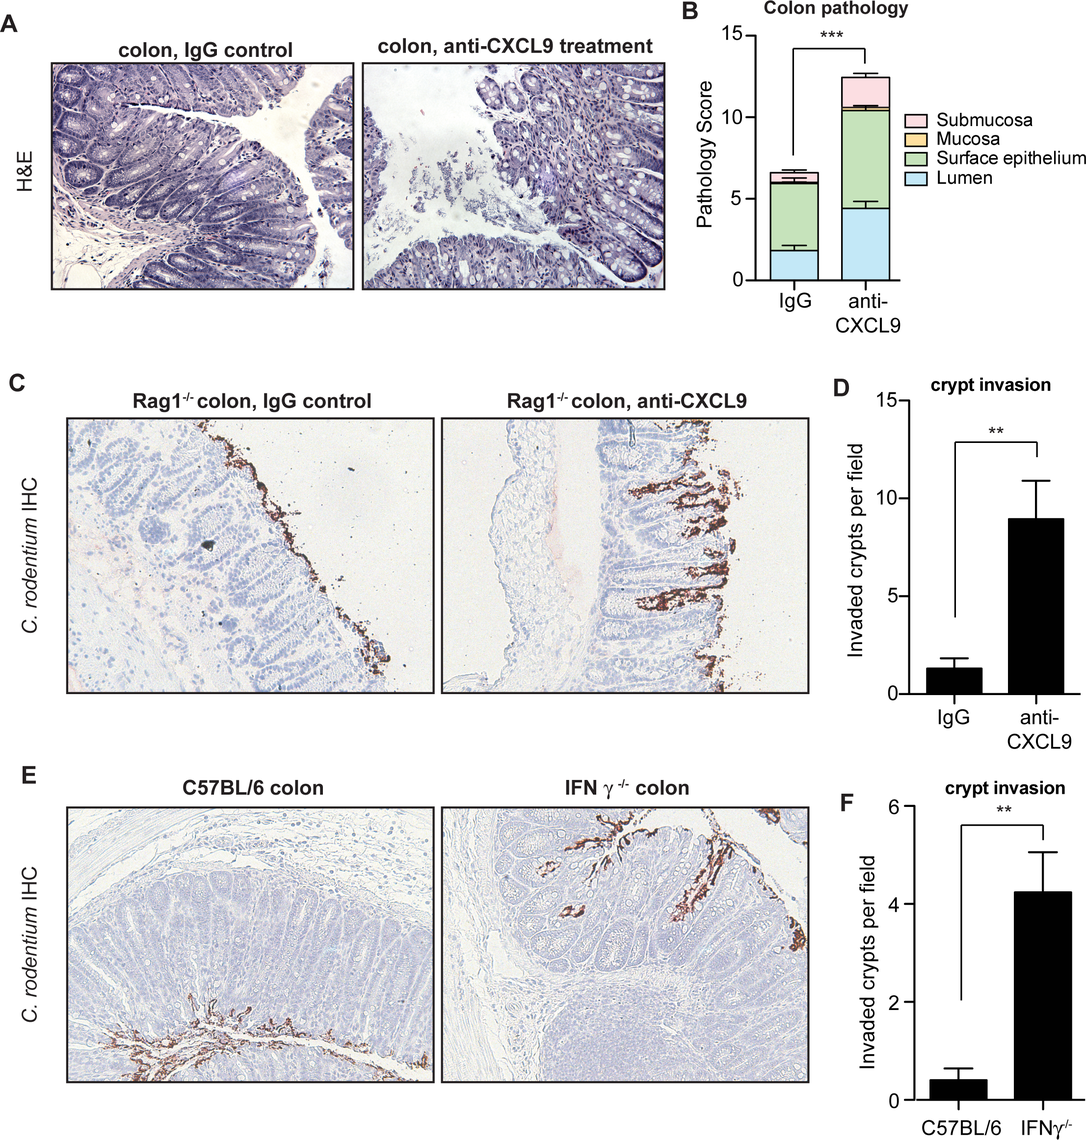 Mice depleted of CXCL9 have greater <i>C</i>. rodentium-induced pathology.